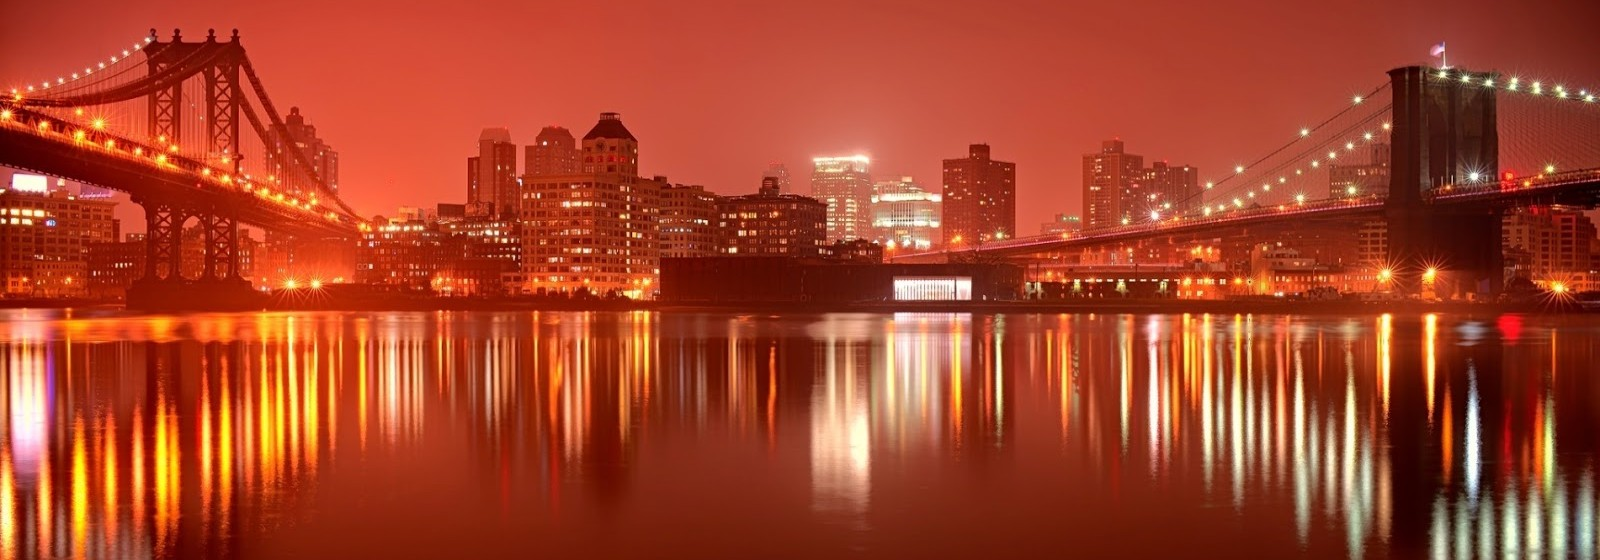 brooklyn-red-cityscape-background